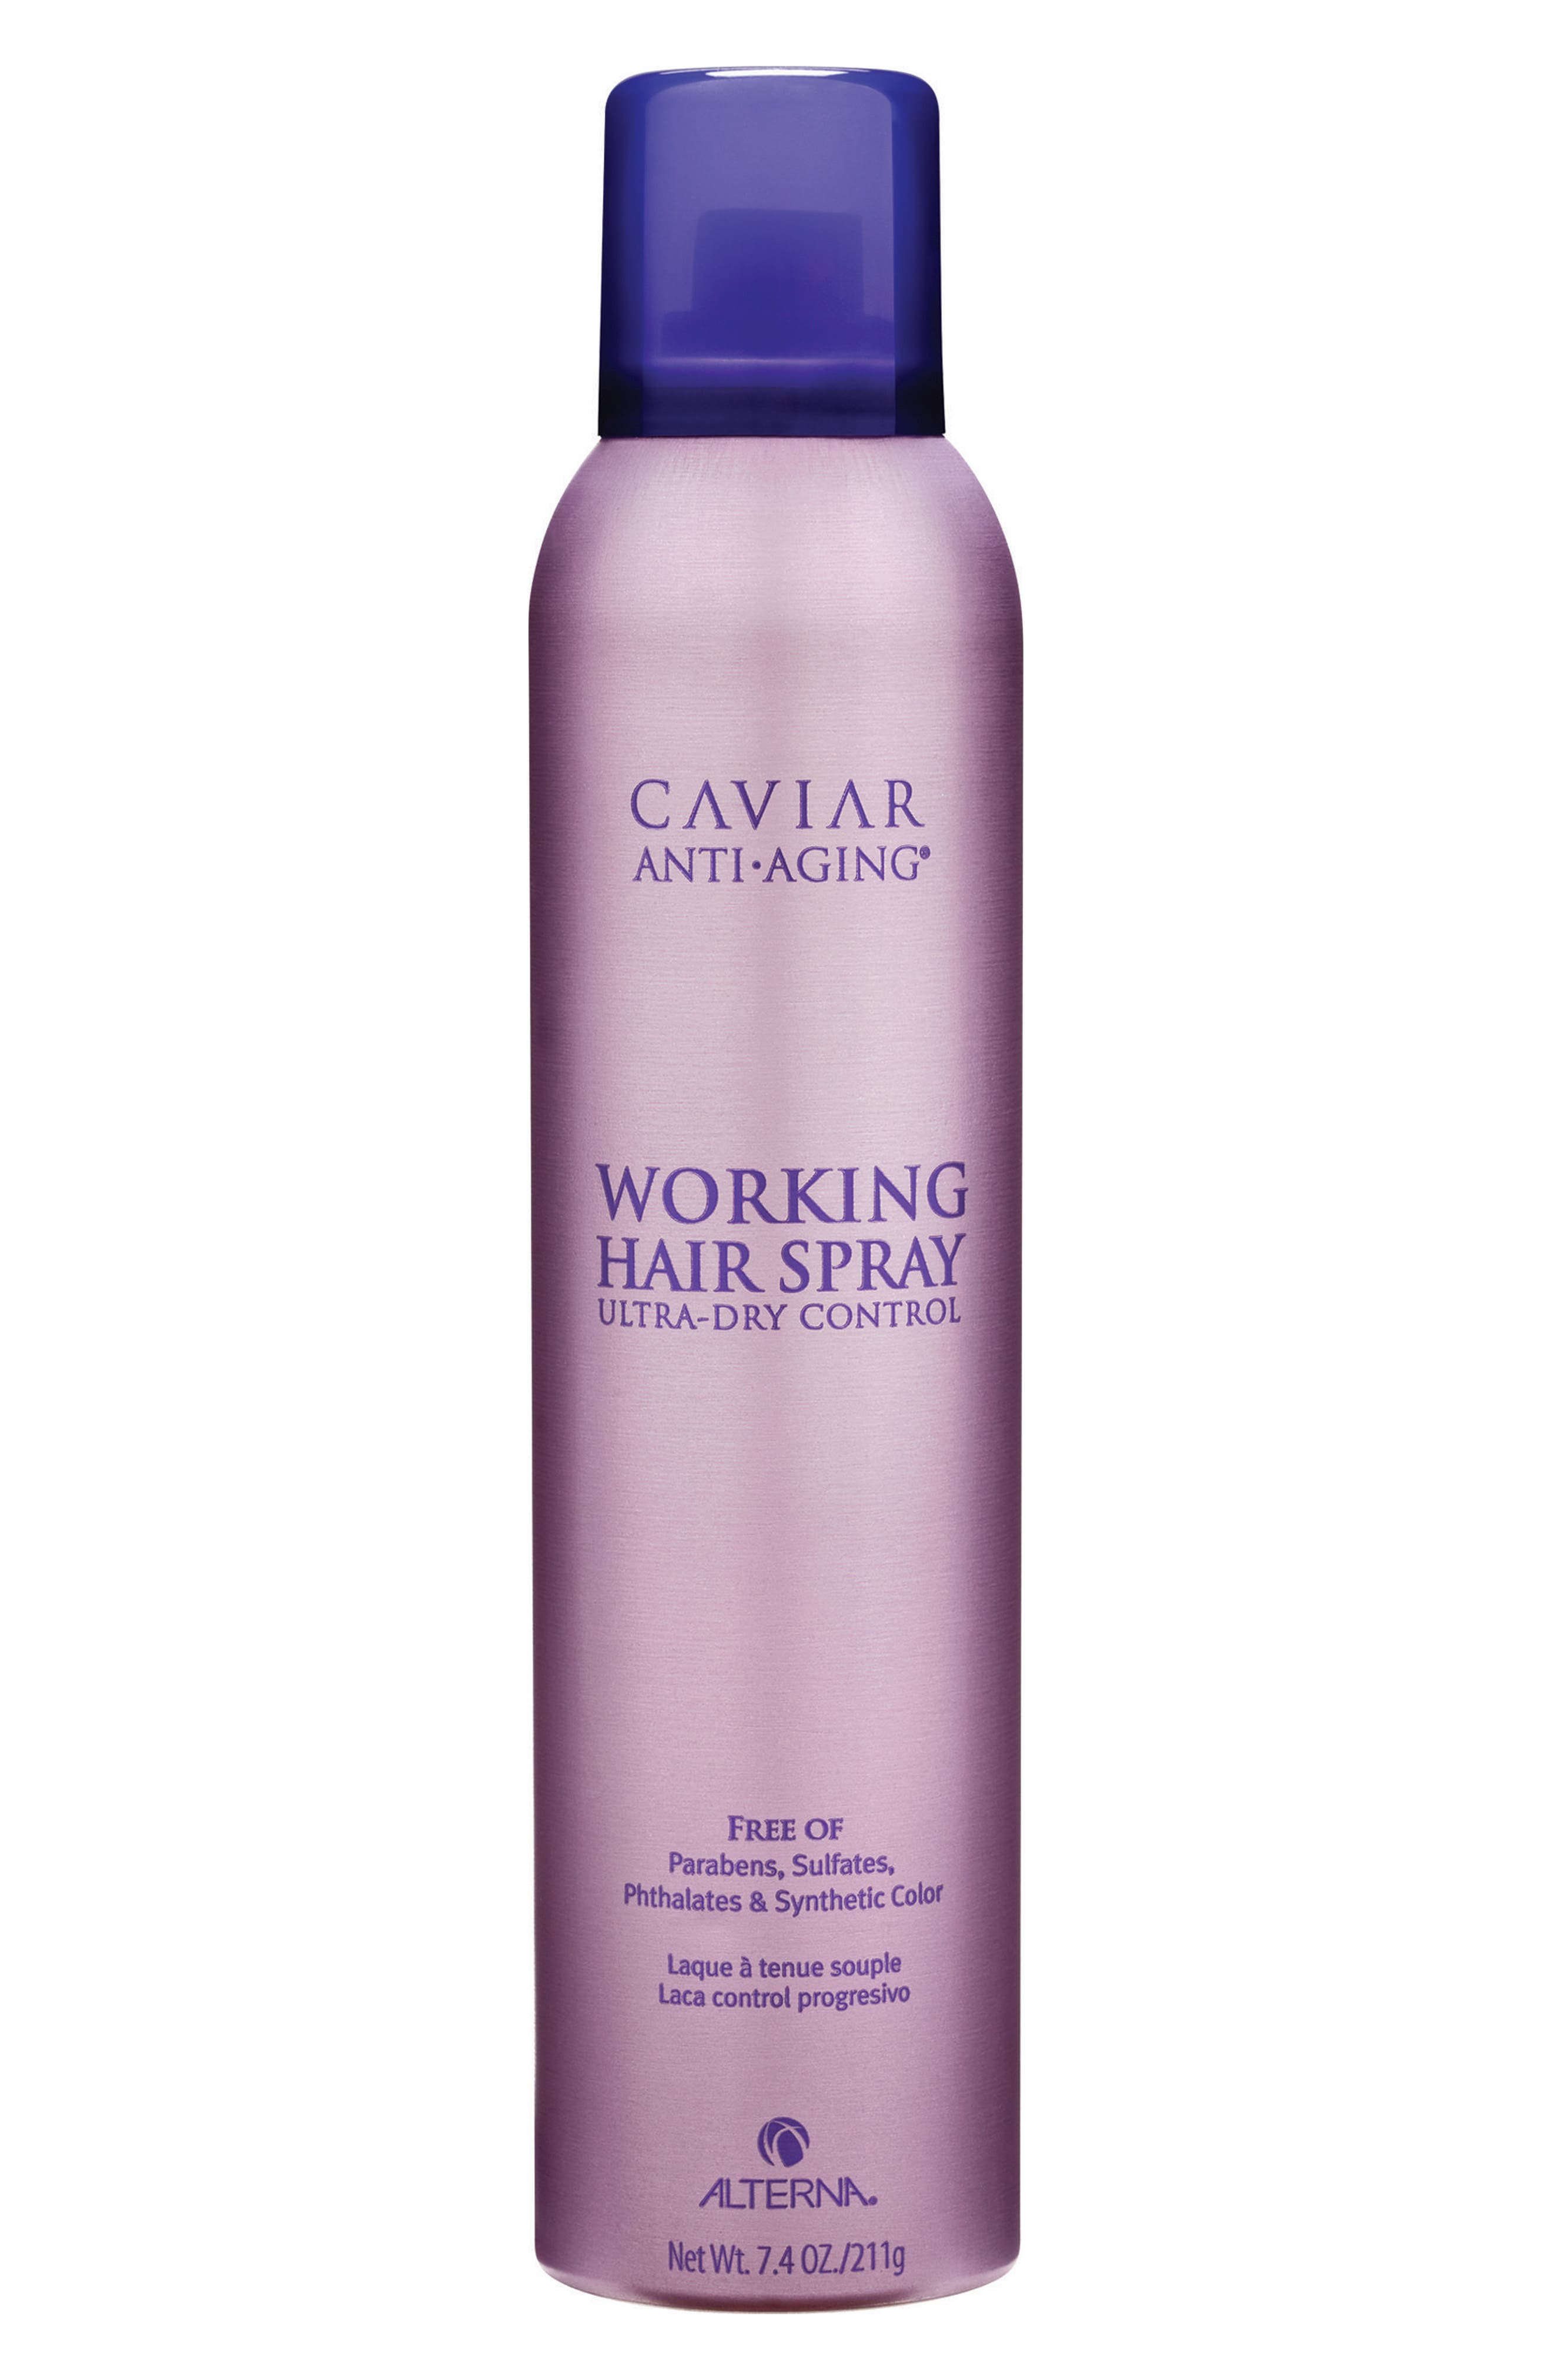 ALTERNA® Caviar Anti-Aging Working Hair Spray